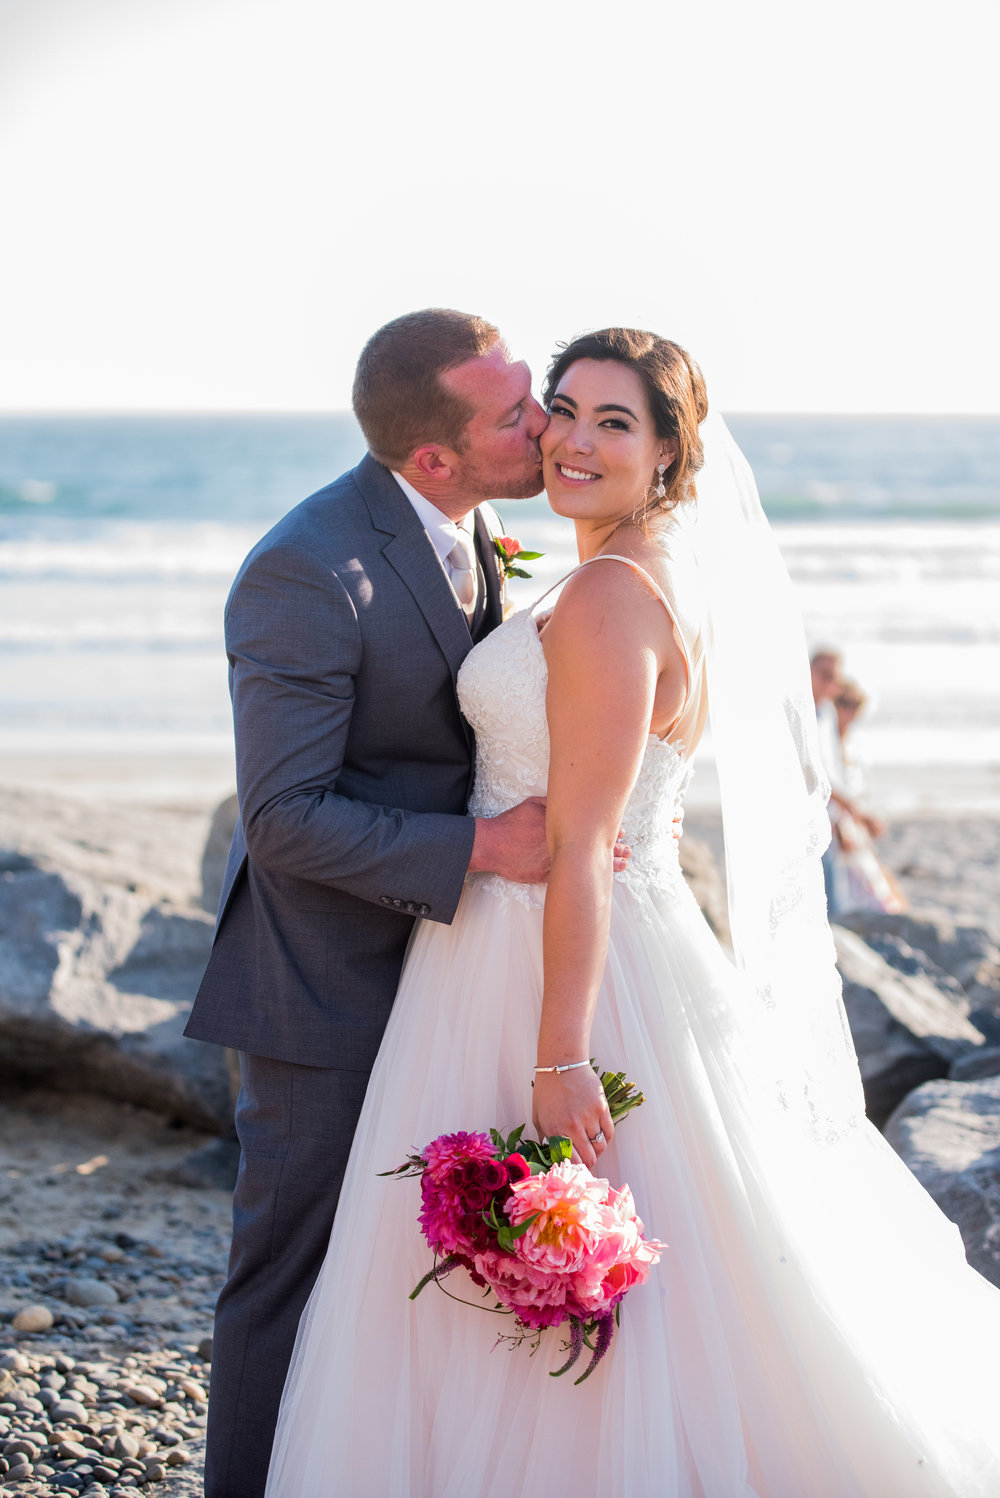 Pacific-Coast-Grill-Beach-Wedding-Olivia-Kevin-2016-447.jpg